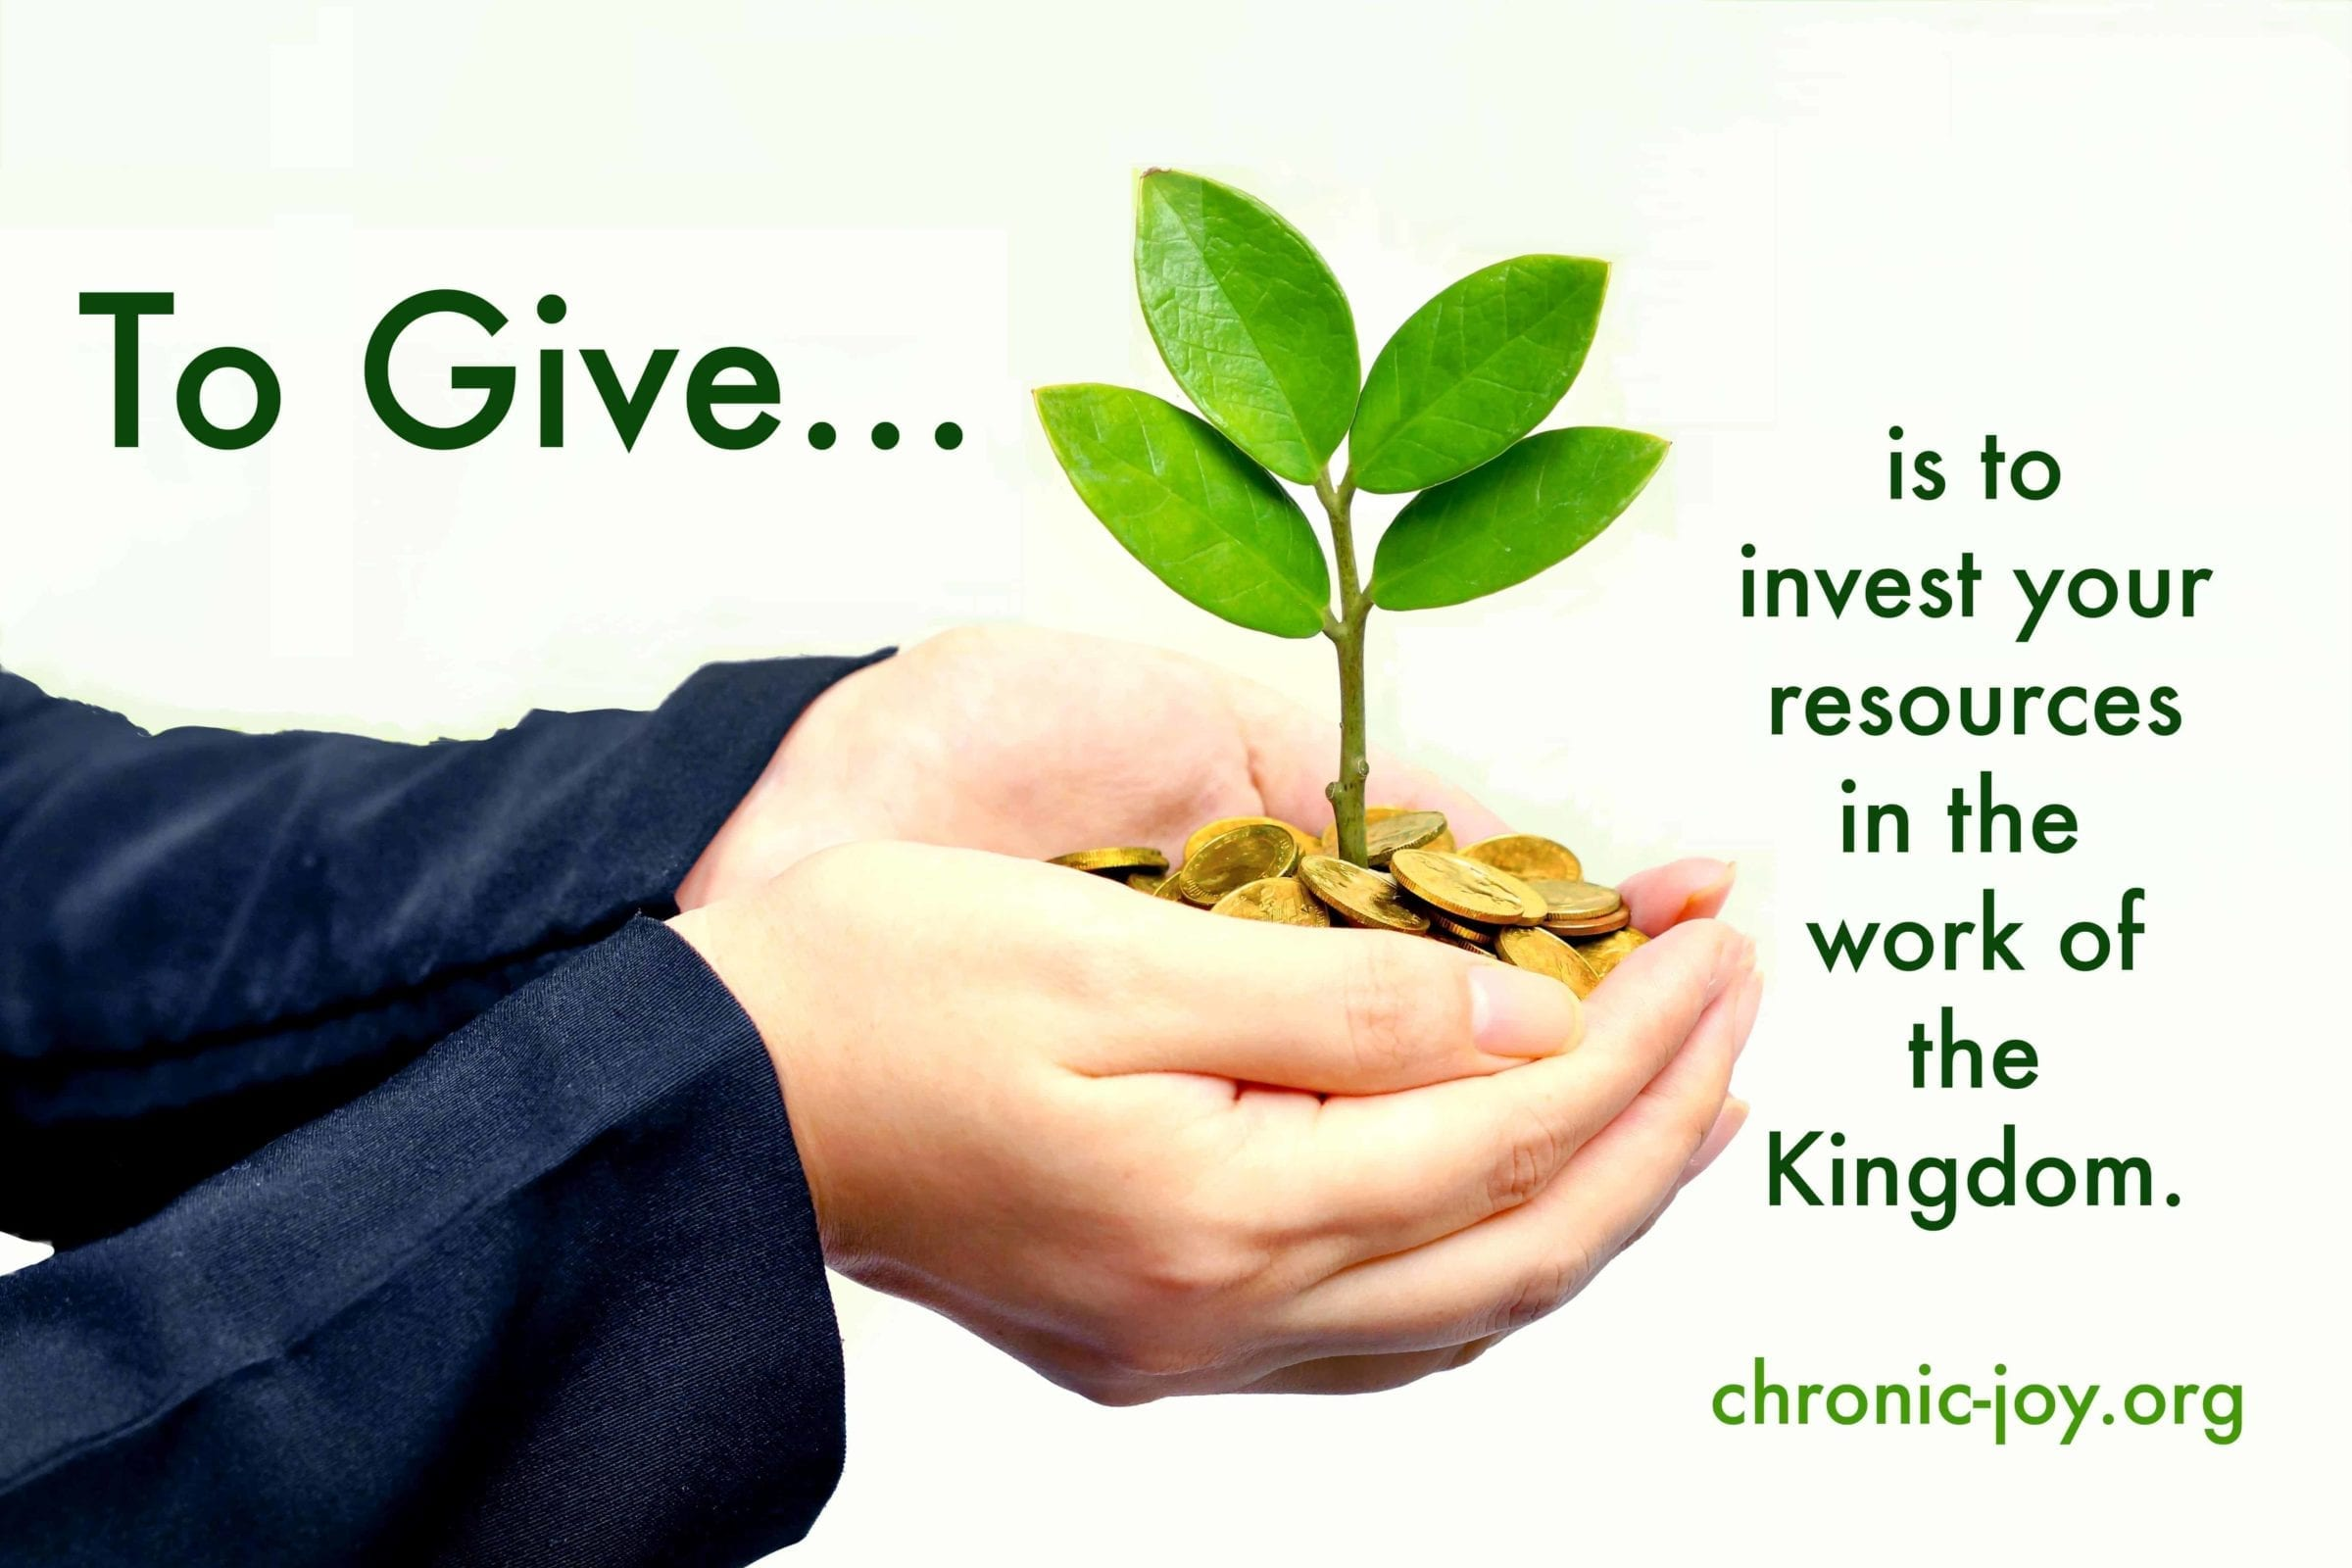 To Give is to invest in the work of the Kingdom.